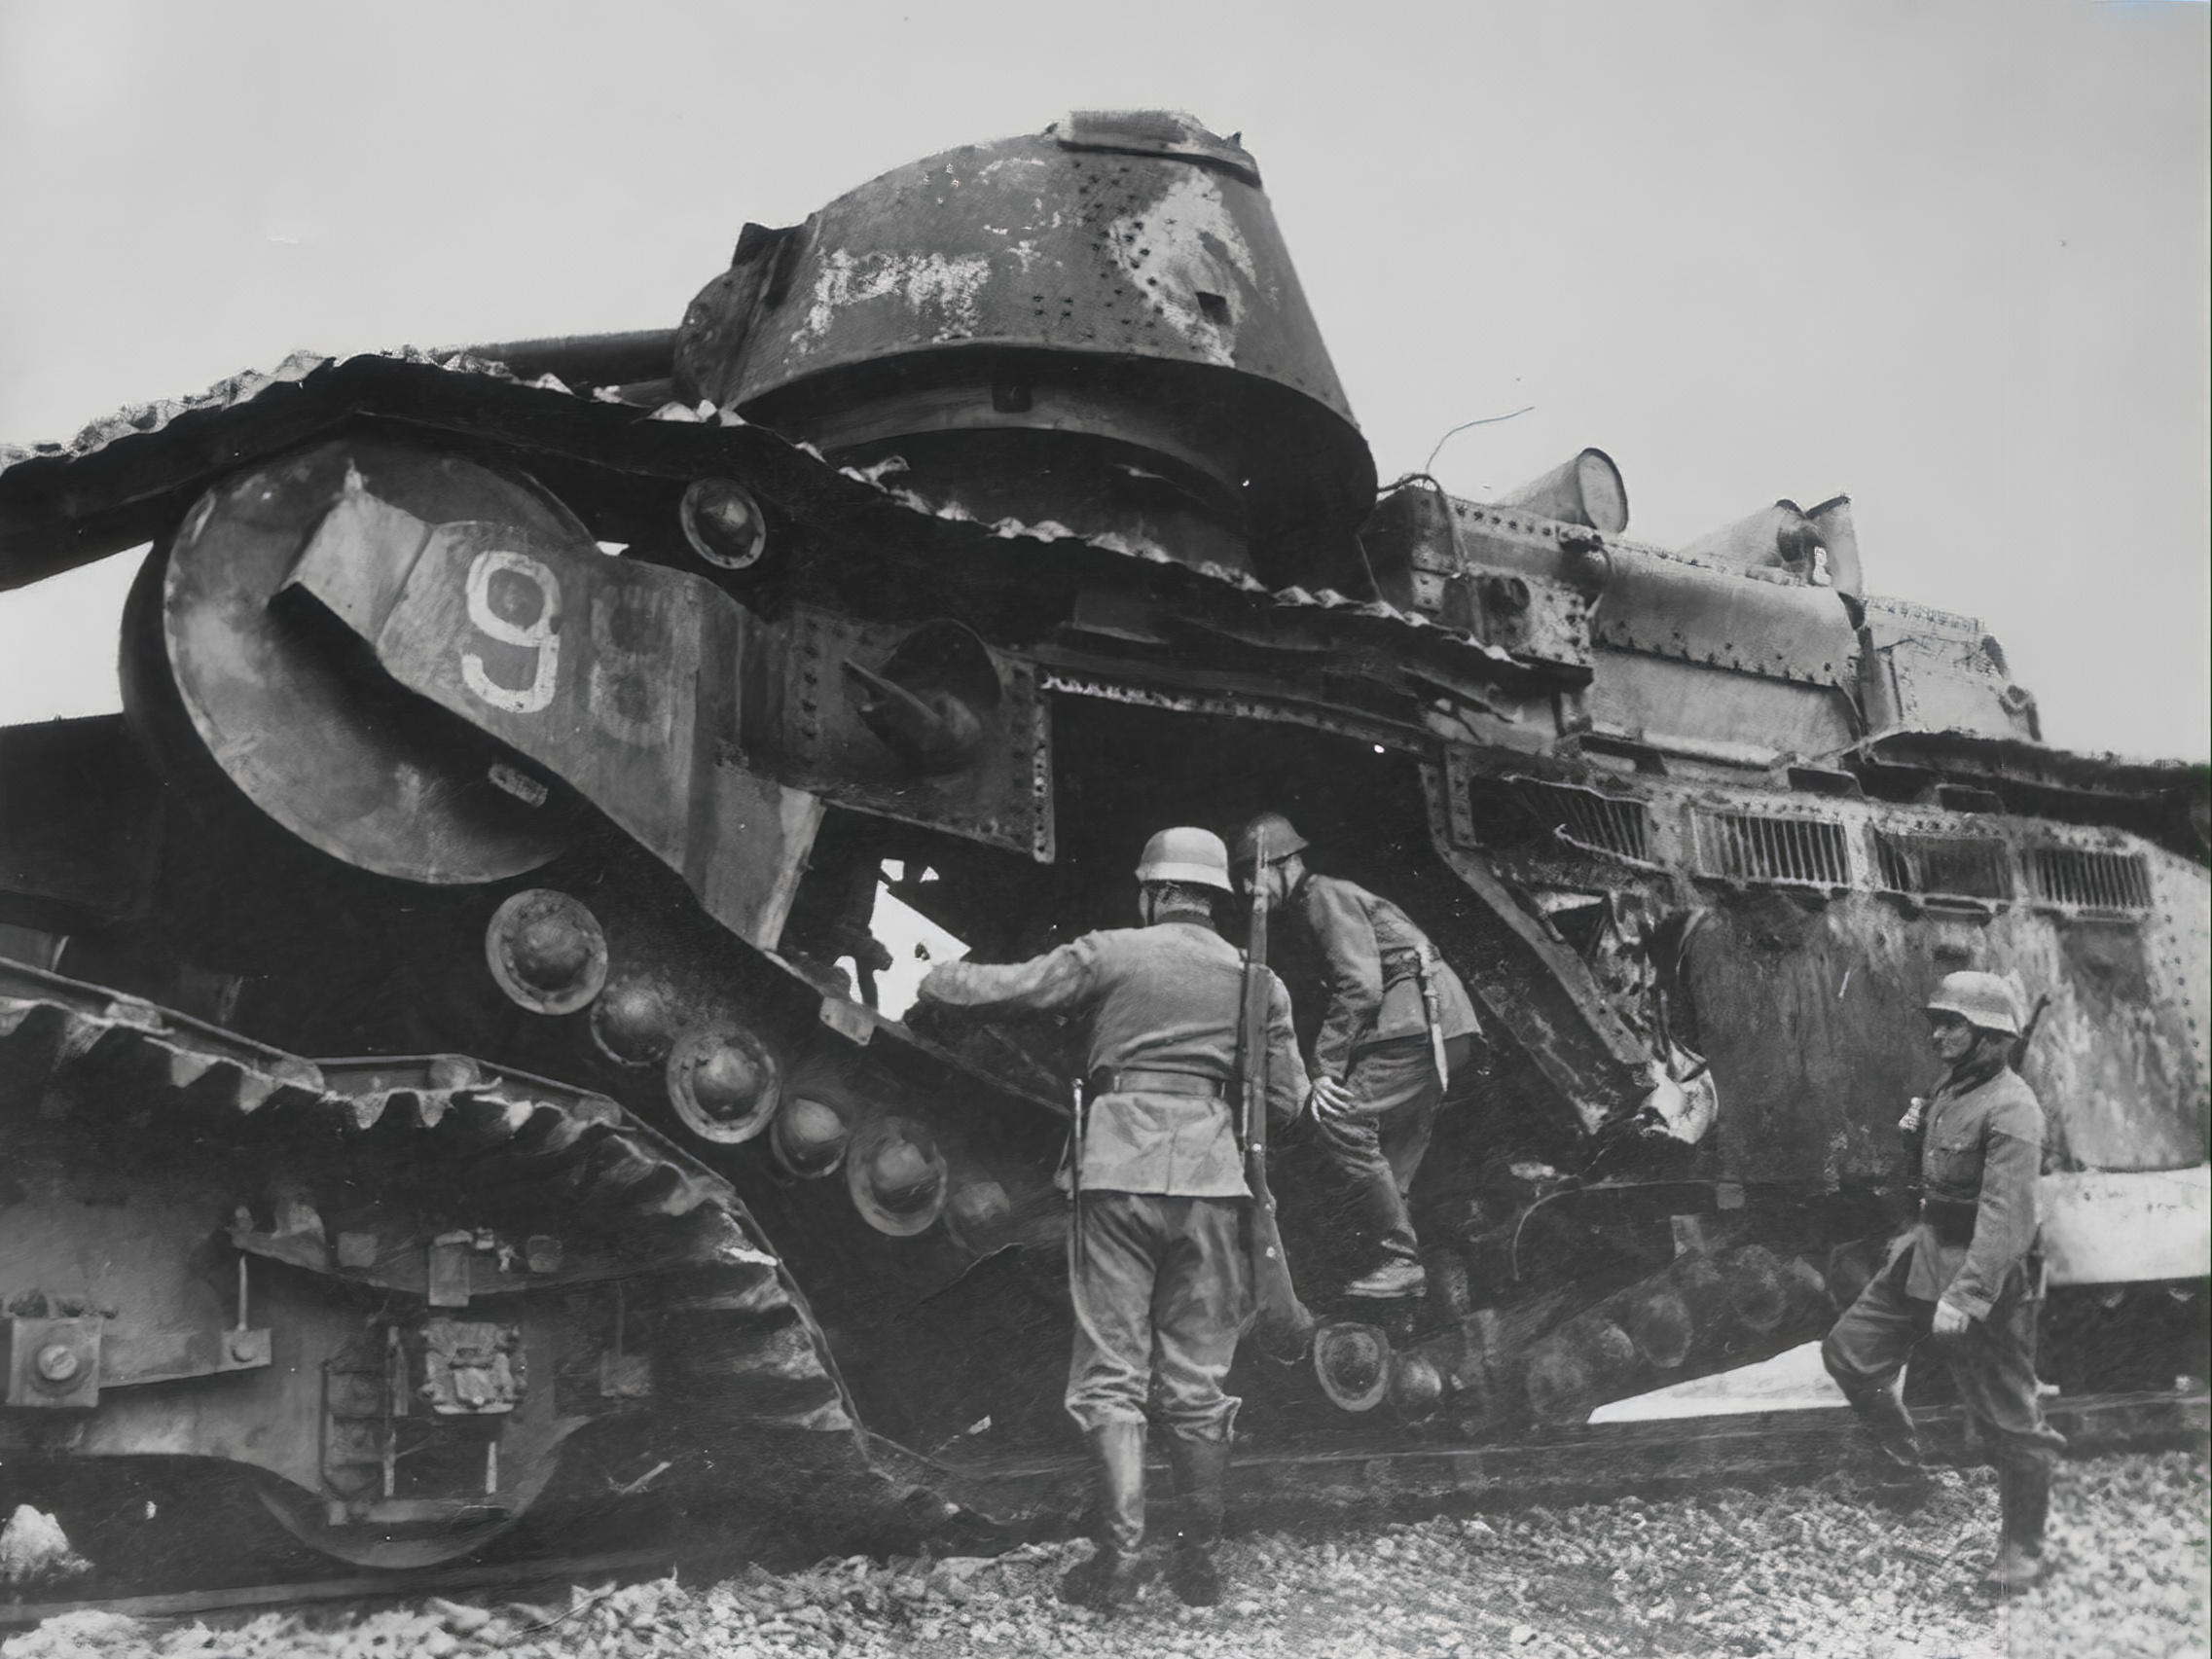 French Army Char 2C or FCM 2C heavy tank destroyed during battle of France 1940 ebay 01